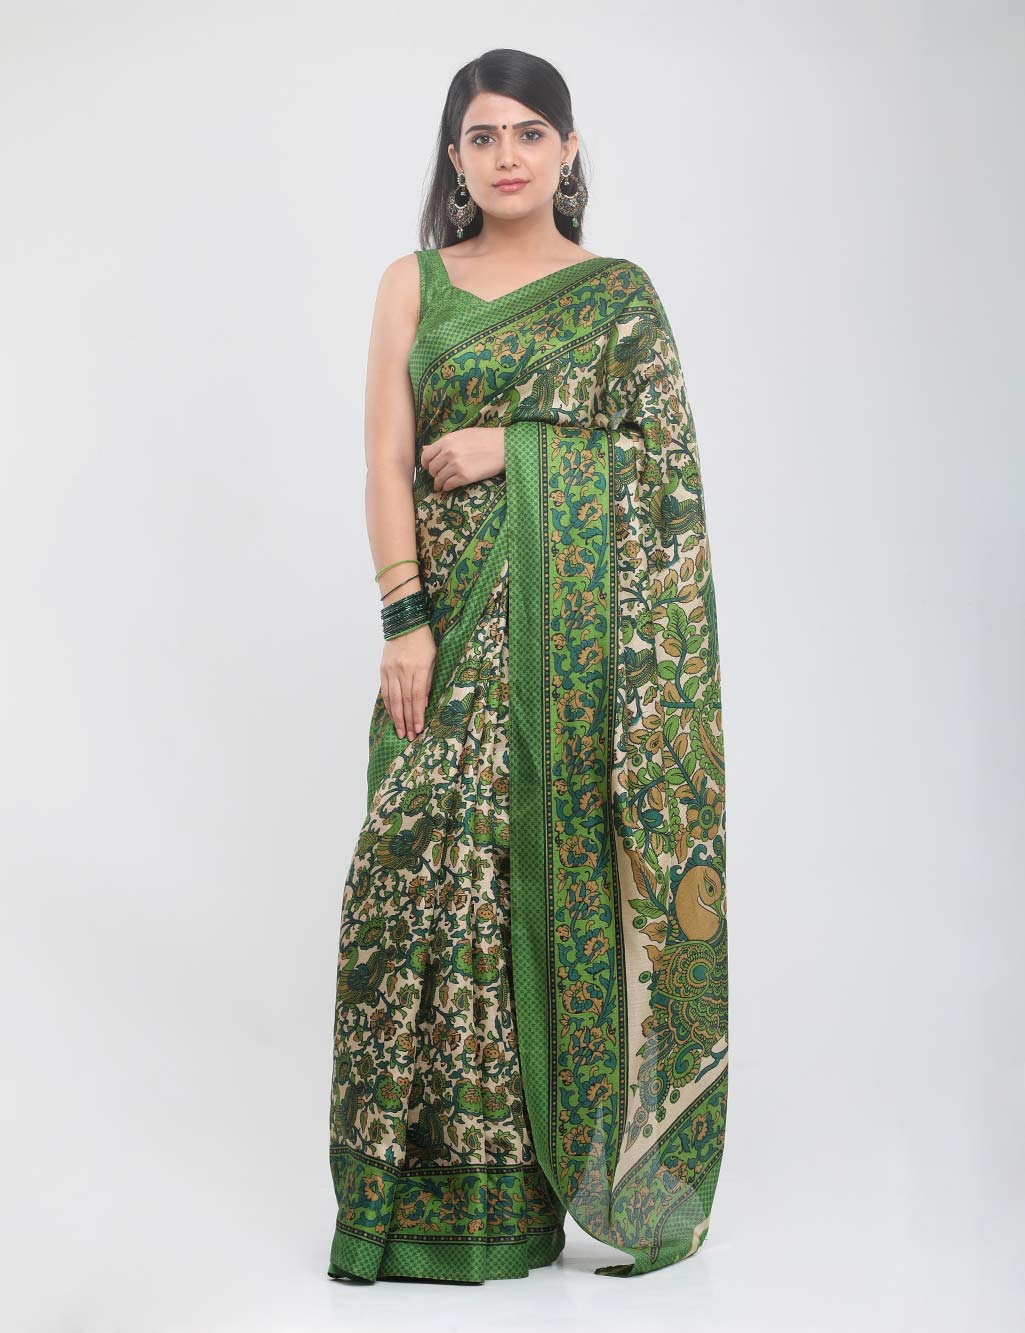 f3e56dba5b3e10 Pack of 2 Printed Kalamkari Sarees by Indian Beauty - Buy Online at Best  Prices | Ezmall.com